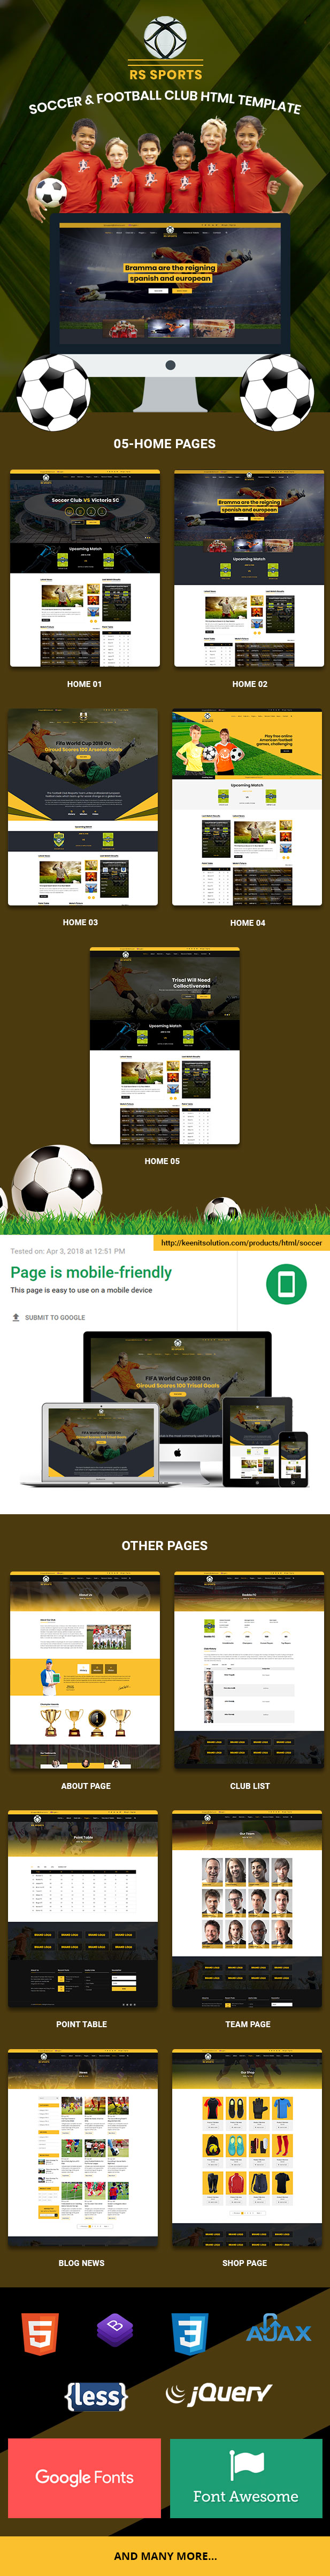 RS Sports - Soccer & Football Club HTML Template